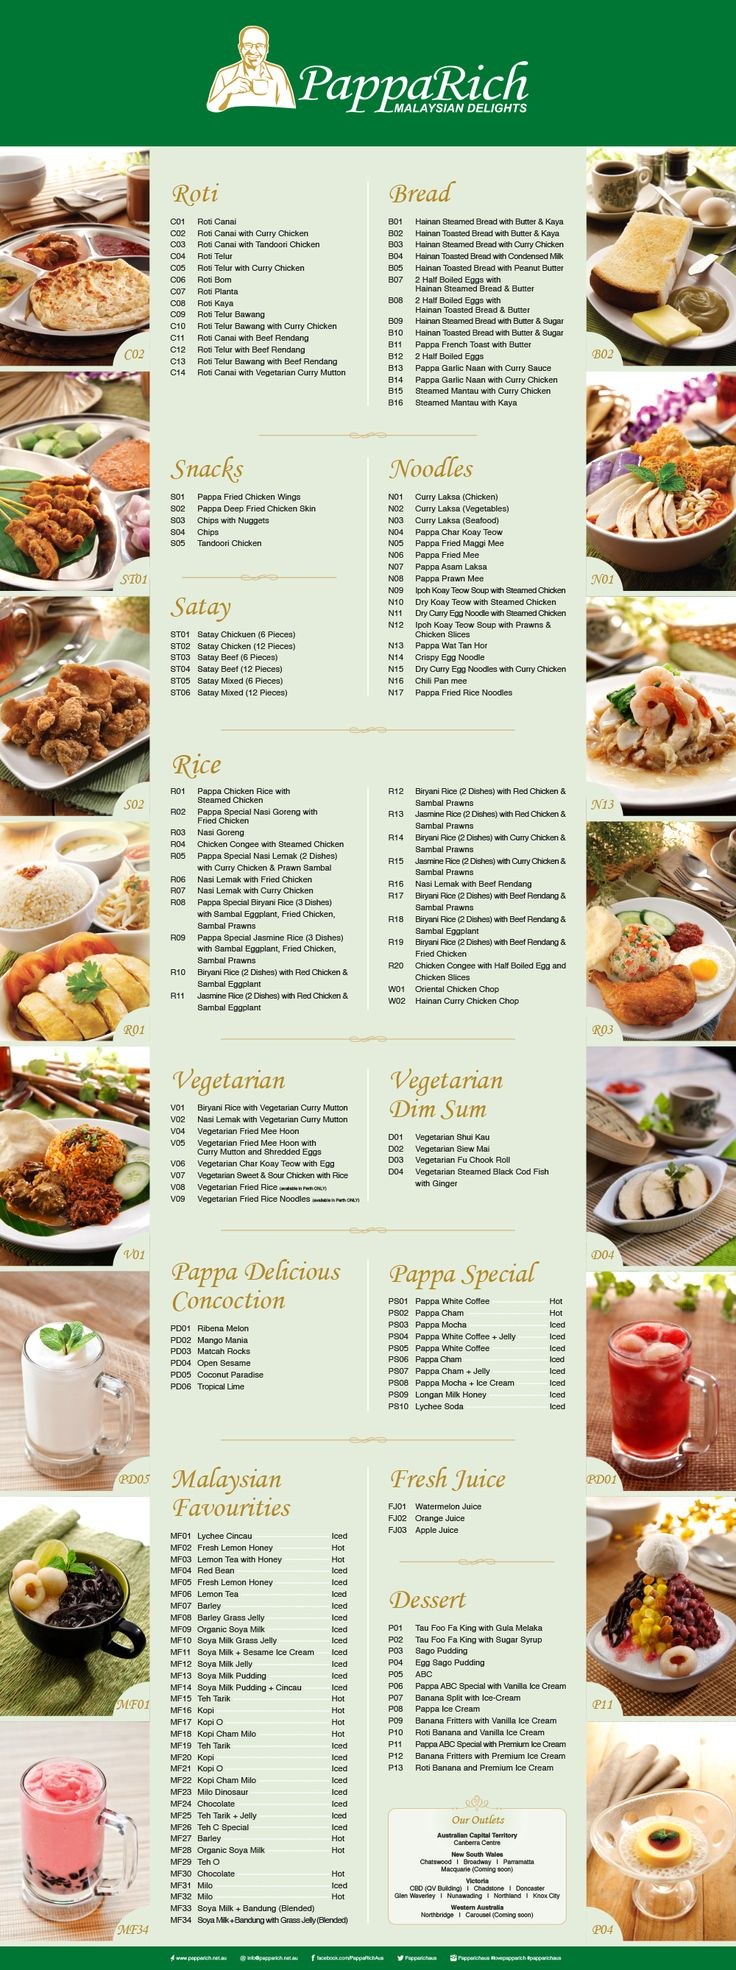 127 best malaysian food images on pinterest malaysian food 127 best malaysian food images on pinterest malaysian food cooking food and malaysian recipes forumfinder Gallery